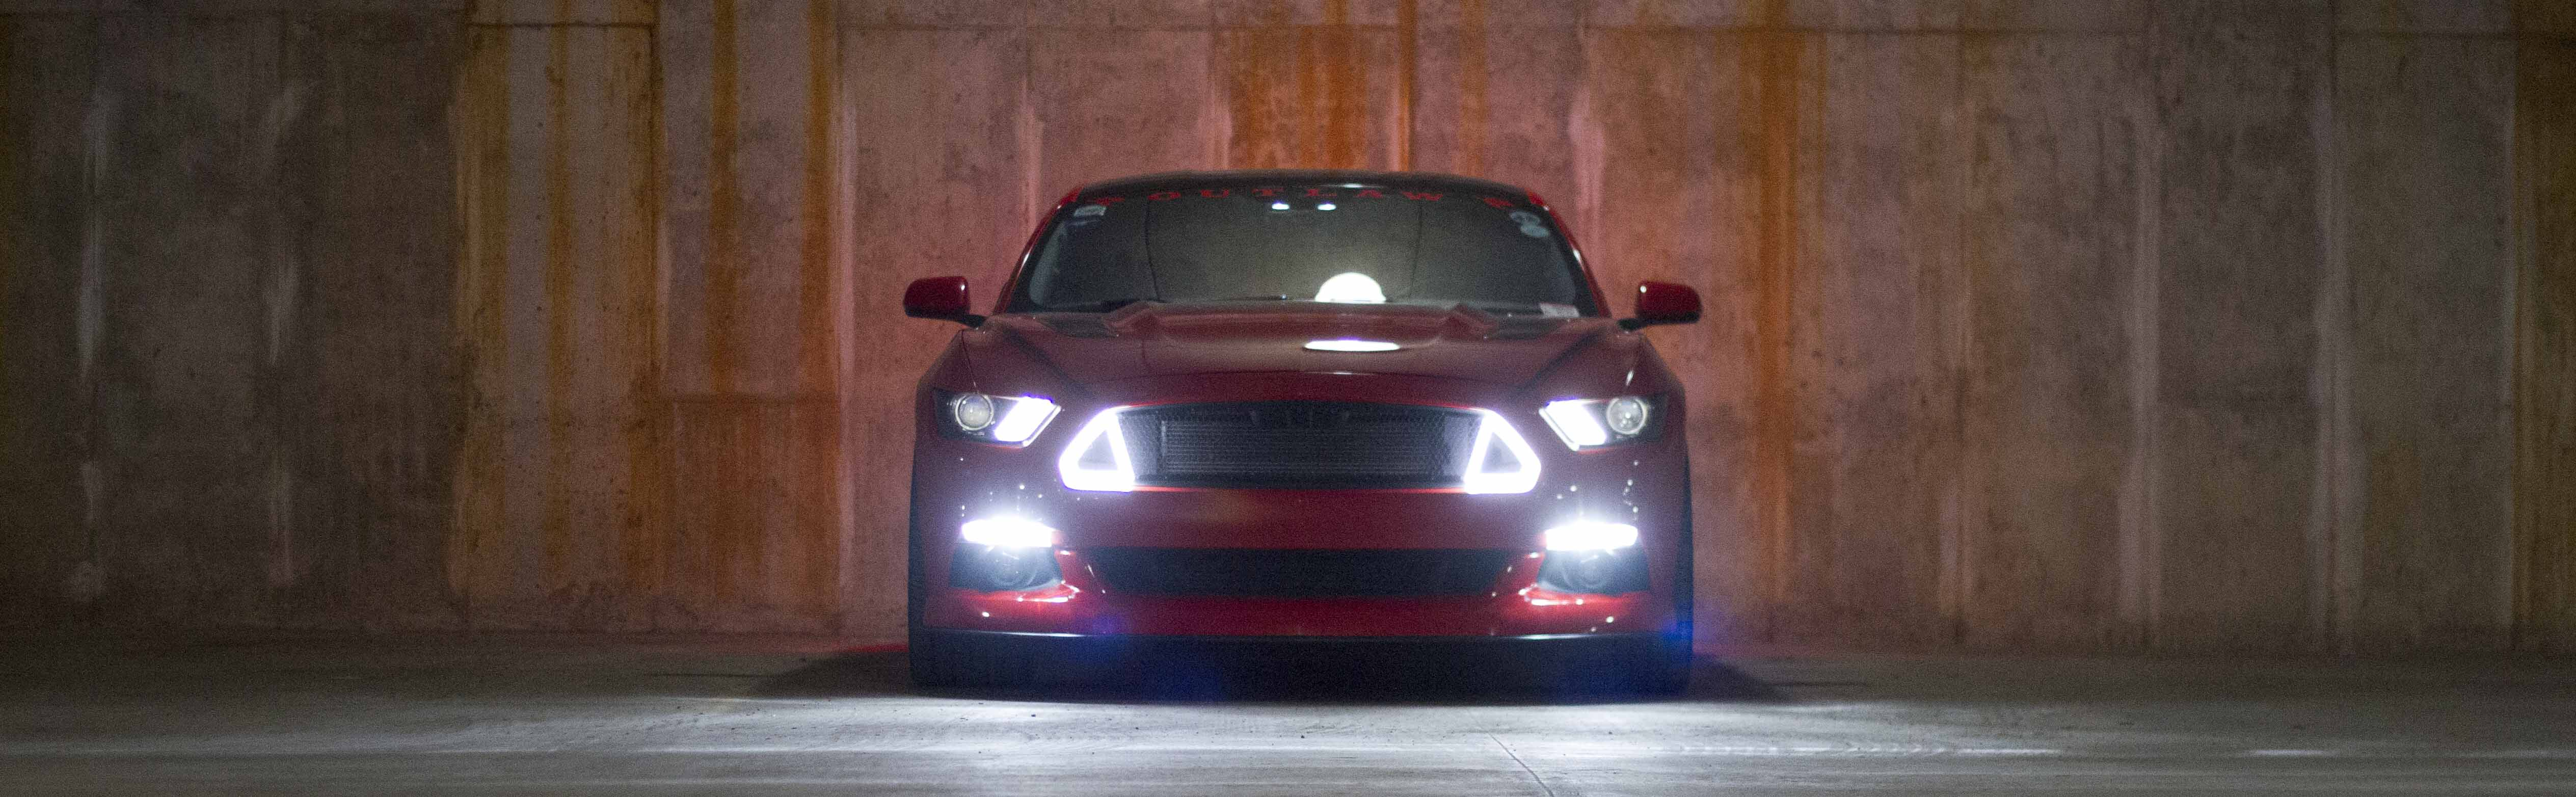 White DRL lighting, amber turn signals, automatically adjusts to your headlight brightness.